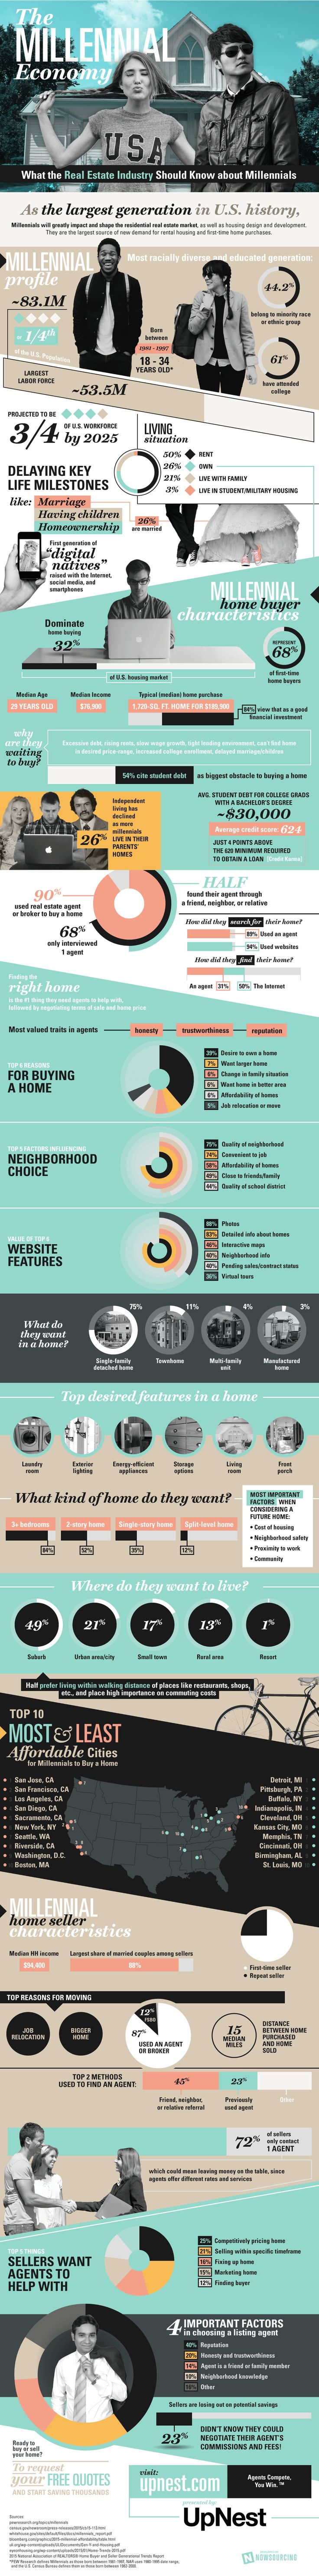 A semi-busy infographic, but fluid and quite informative. One just needs to slow down and read contents. Great use of color and black and white photos: What the Real Estate Industry Should Know about Millennials #infographic ~ Visualistan.